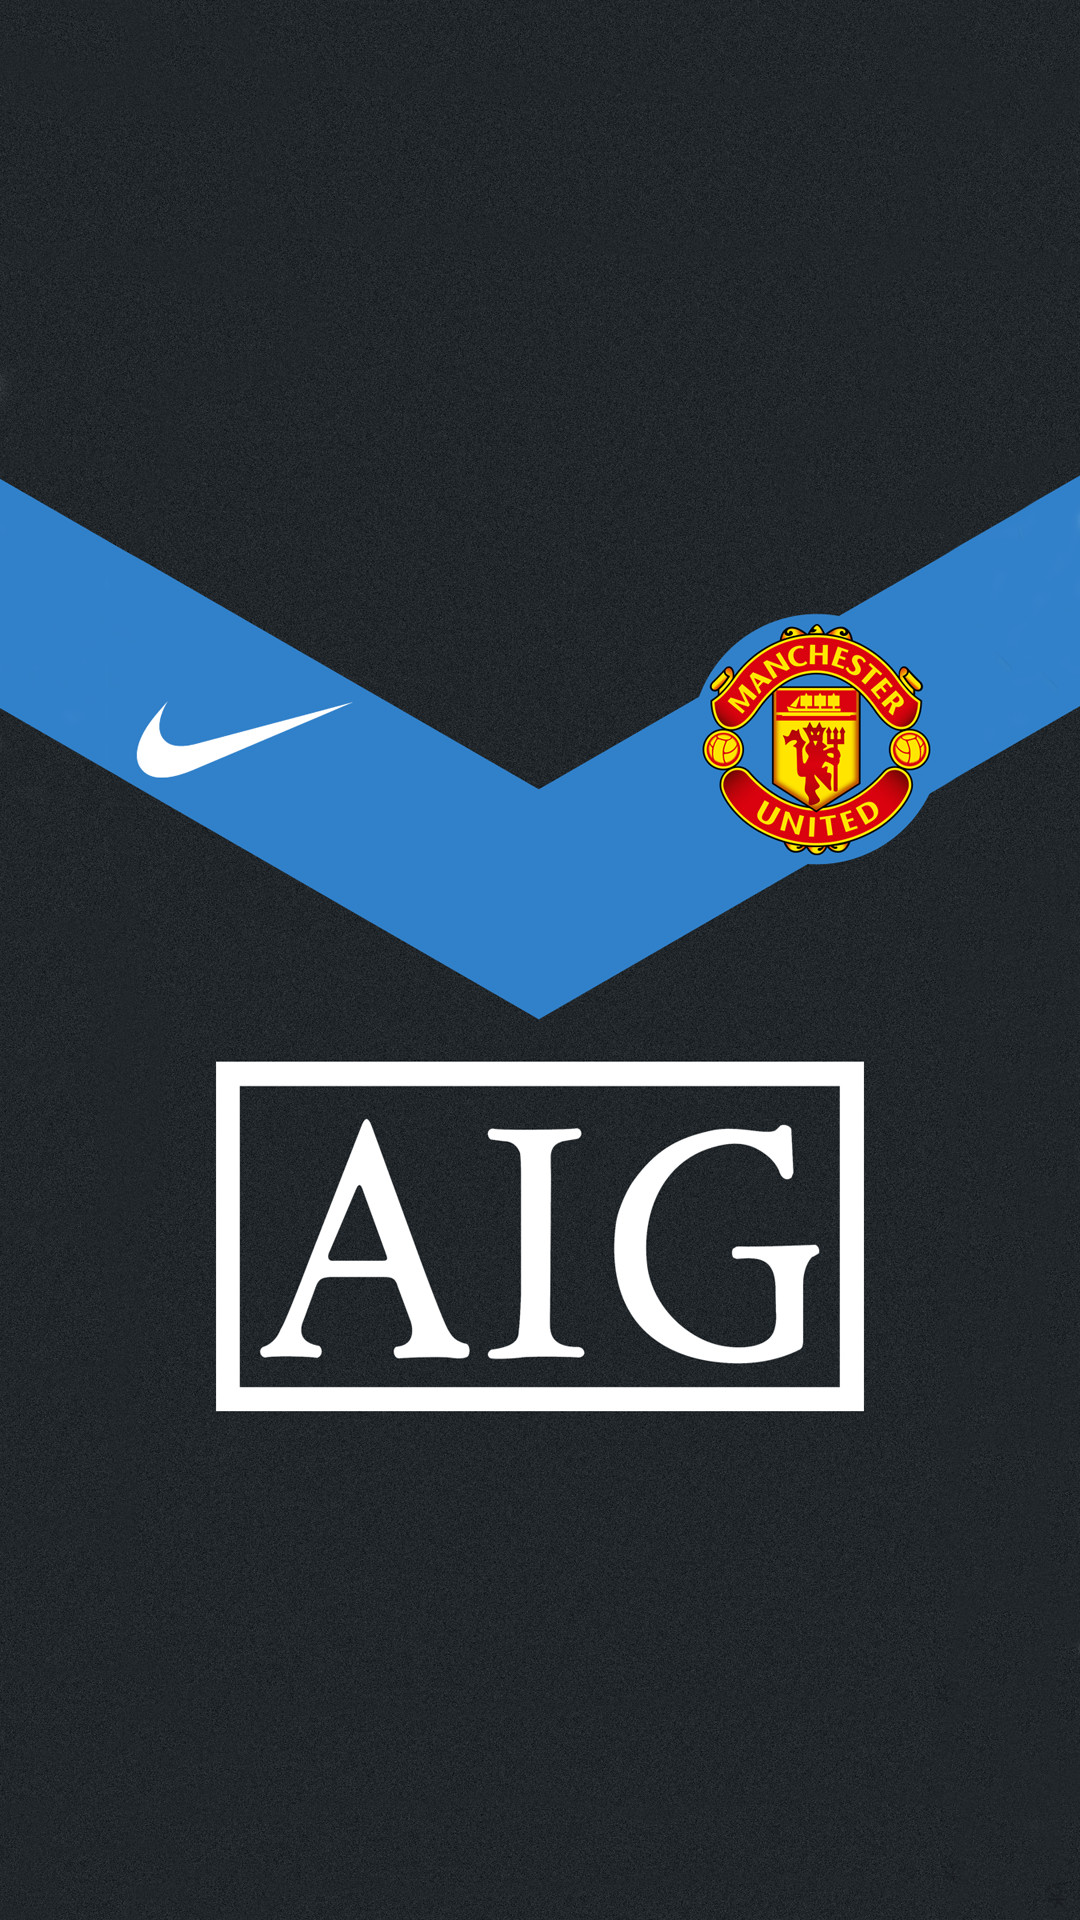 Manchester United AIG away 02.png